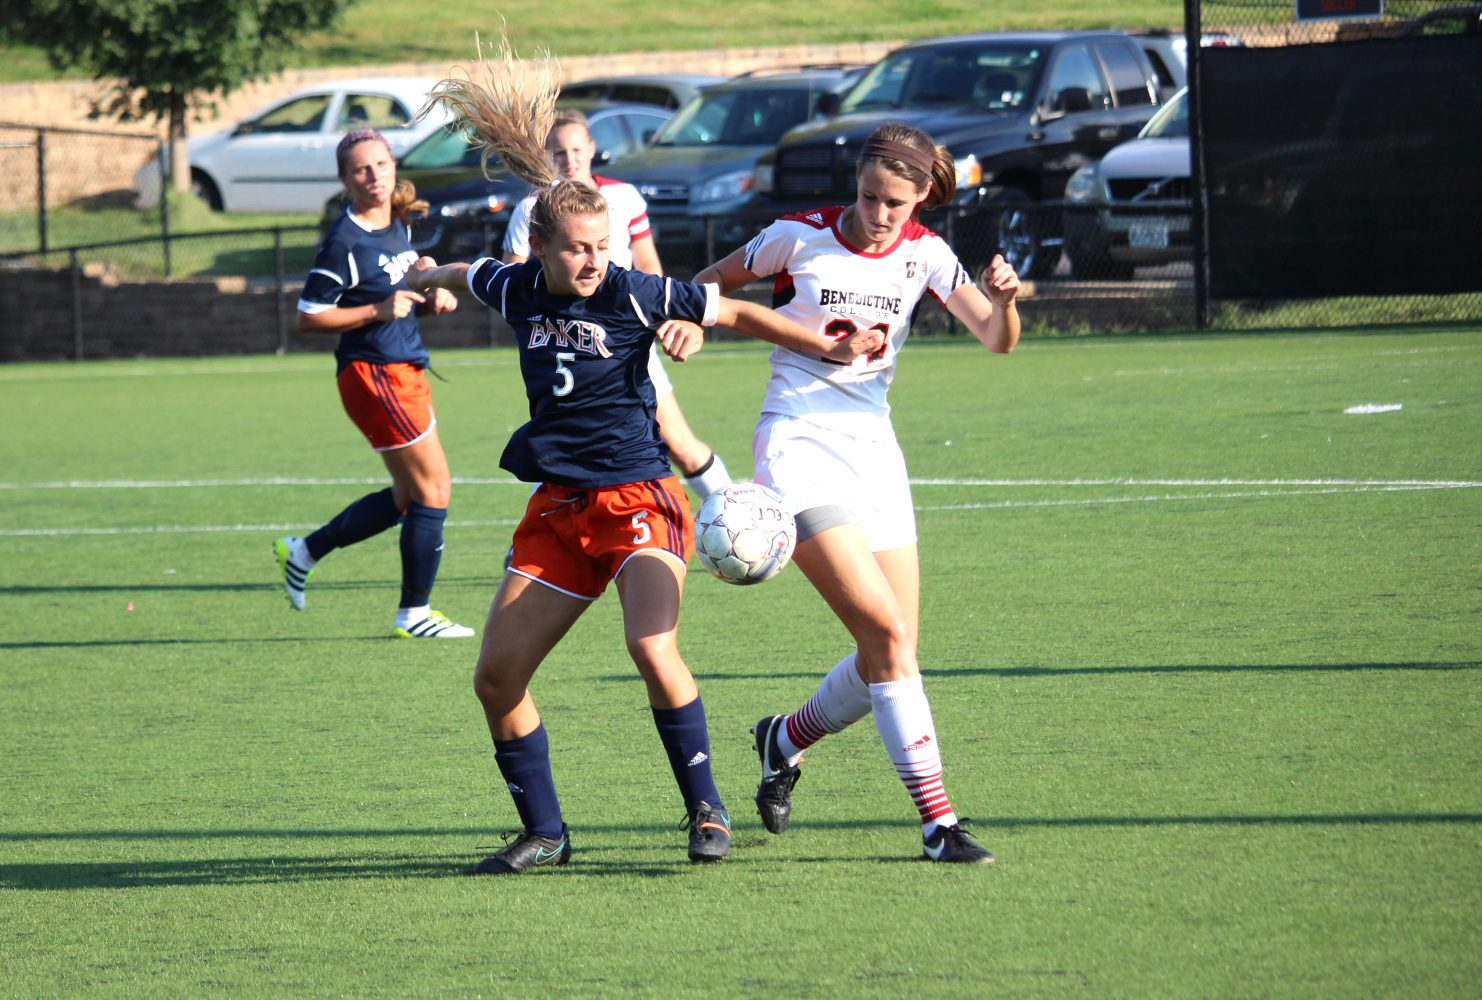 Freshman Erica Esch steps in front of Benedictine defender Hailey McEntee to gain control of the ball during Bakers 3-0 loss in Atchison on Sept. 21. Image by Bailey Conklin.